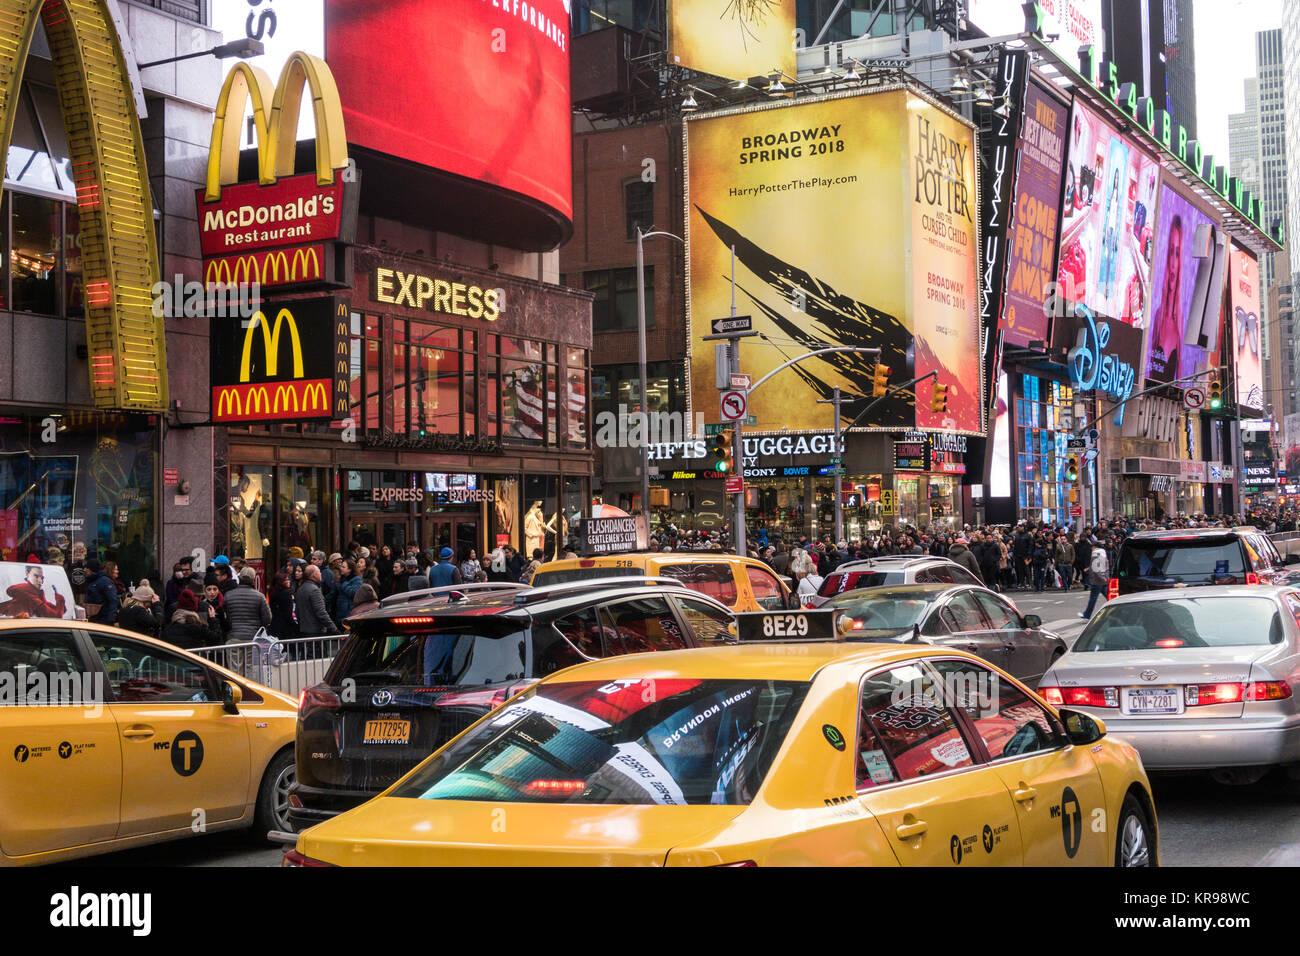 Traffic and Electronic Billboards in Times Square, NYC, USA - Stock Image